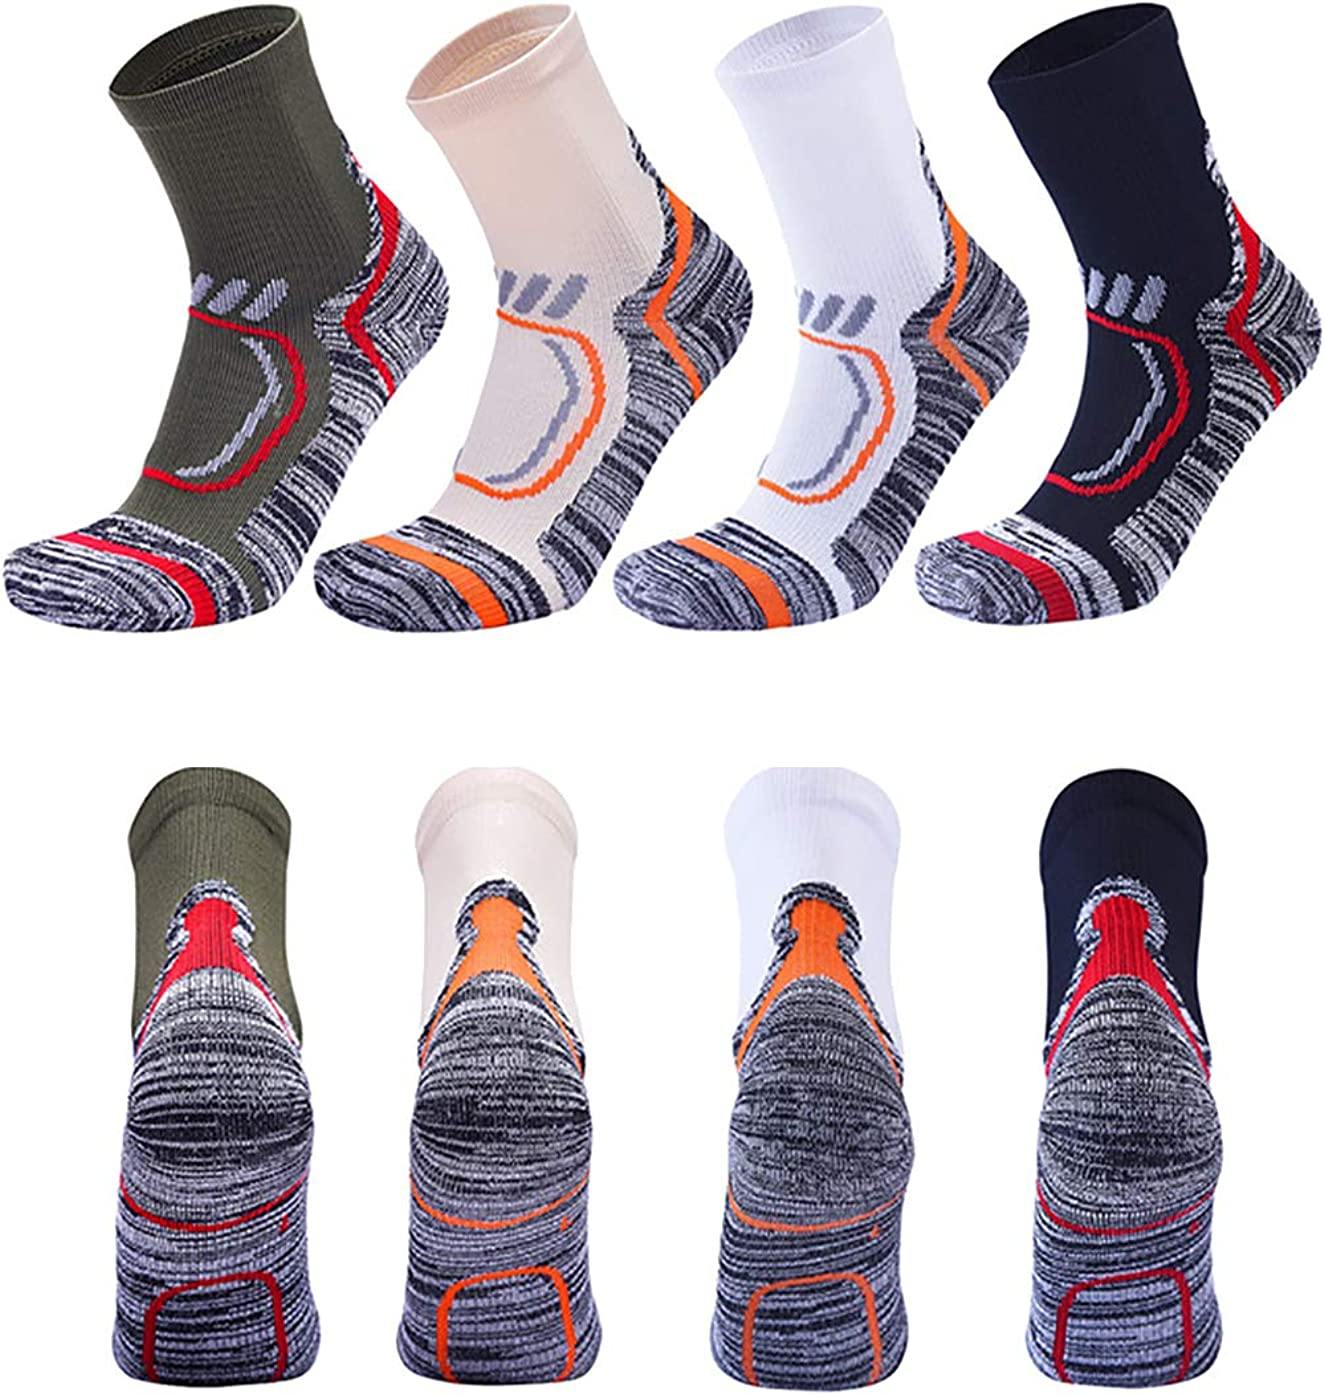 Socks Ankle Compression Sock for Men and Women 4 Pairs, Compression Running Sock with Ankle Support